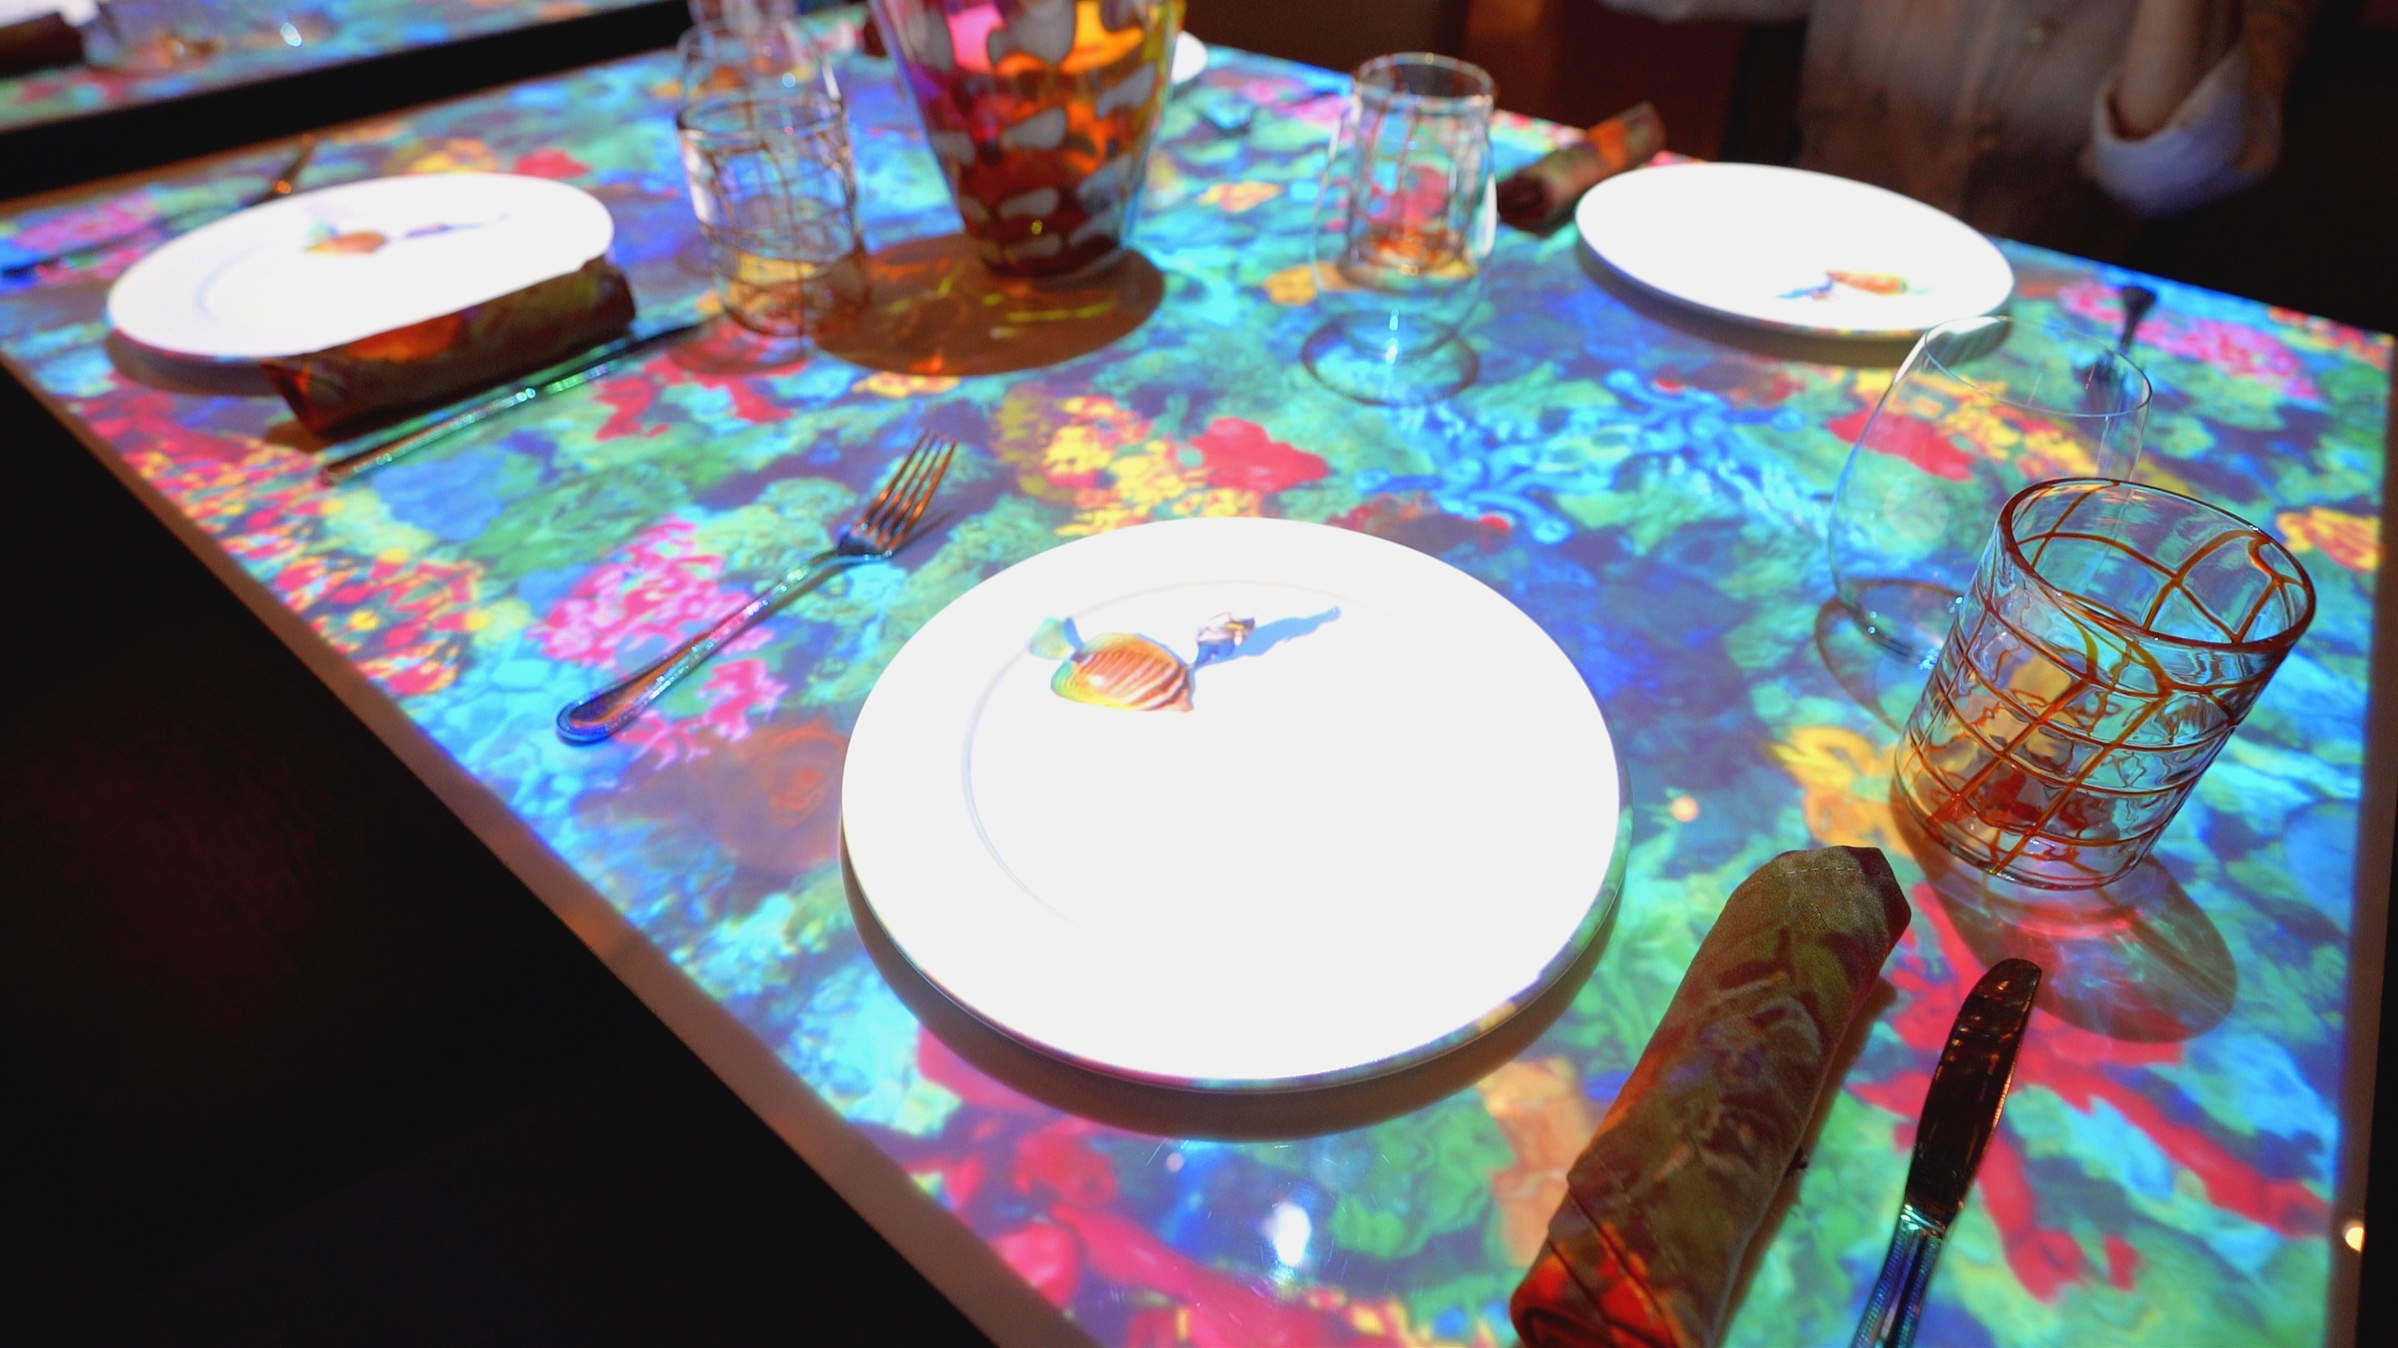 Each dish is preceded by a projection show.